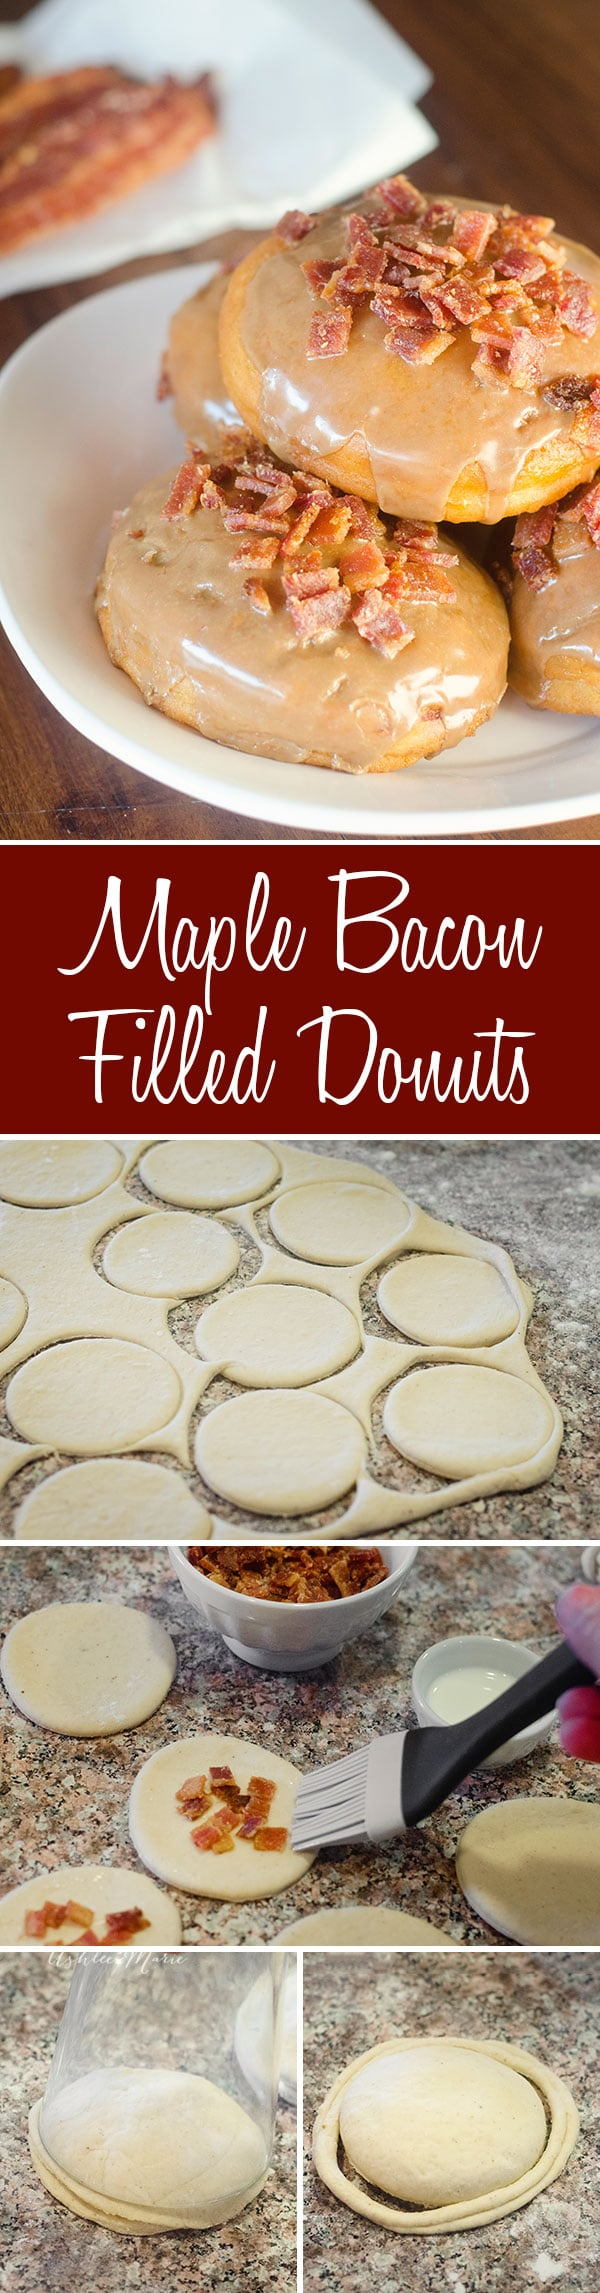 it doesnt get much better than fresh homemade donuts, add some candied bacon and maple glaze and everyone will fall in love